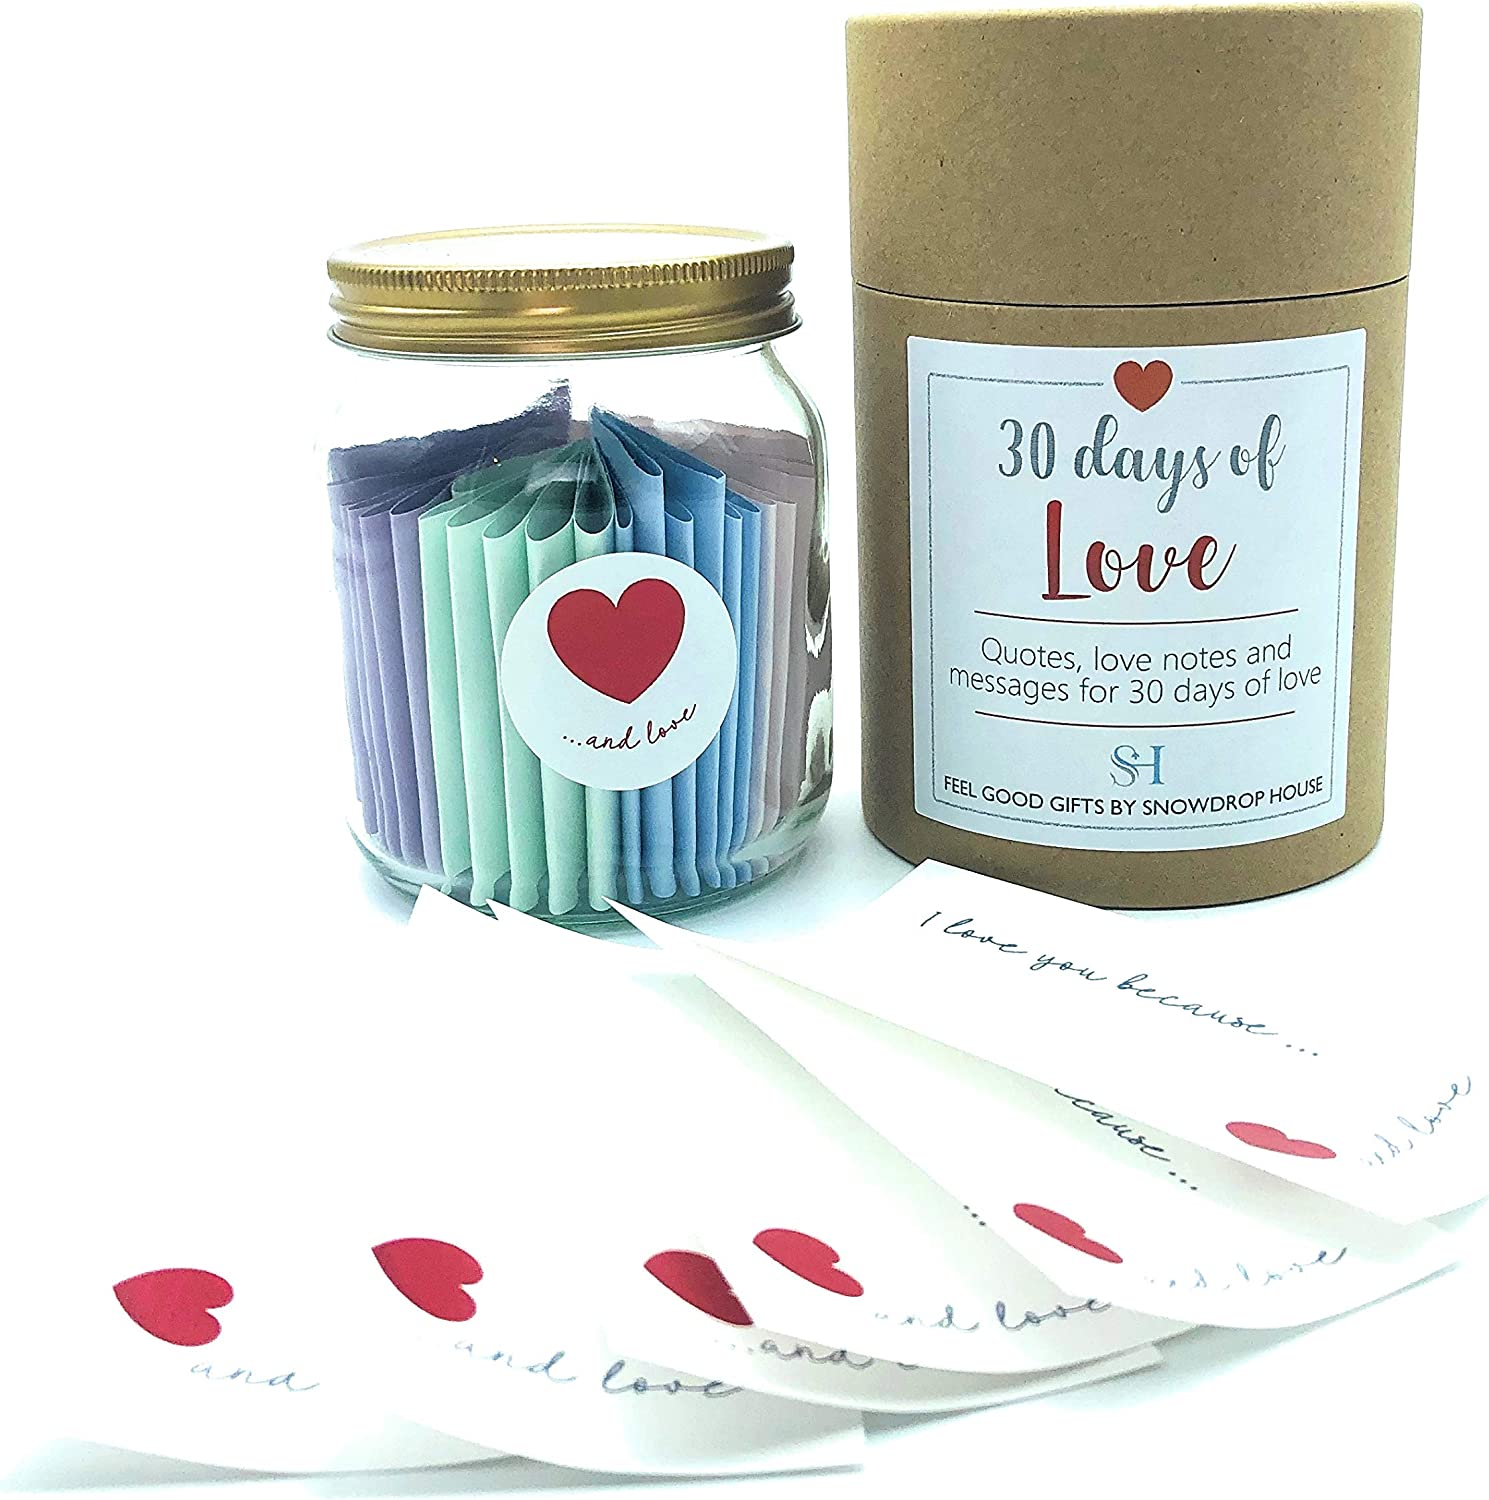 Snowdrophousegifts Sentimental Love Gift Jar Quotes Vibes Date Ideas Personalised Notes 30 One For Every Day Of The Month Gift Boxed For Him Or Her Valentine S Day Birthday Christmas